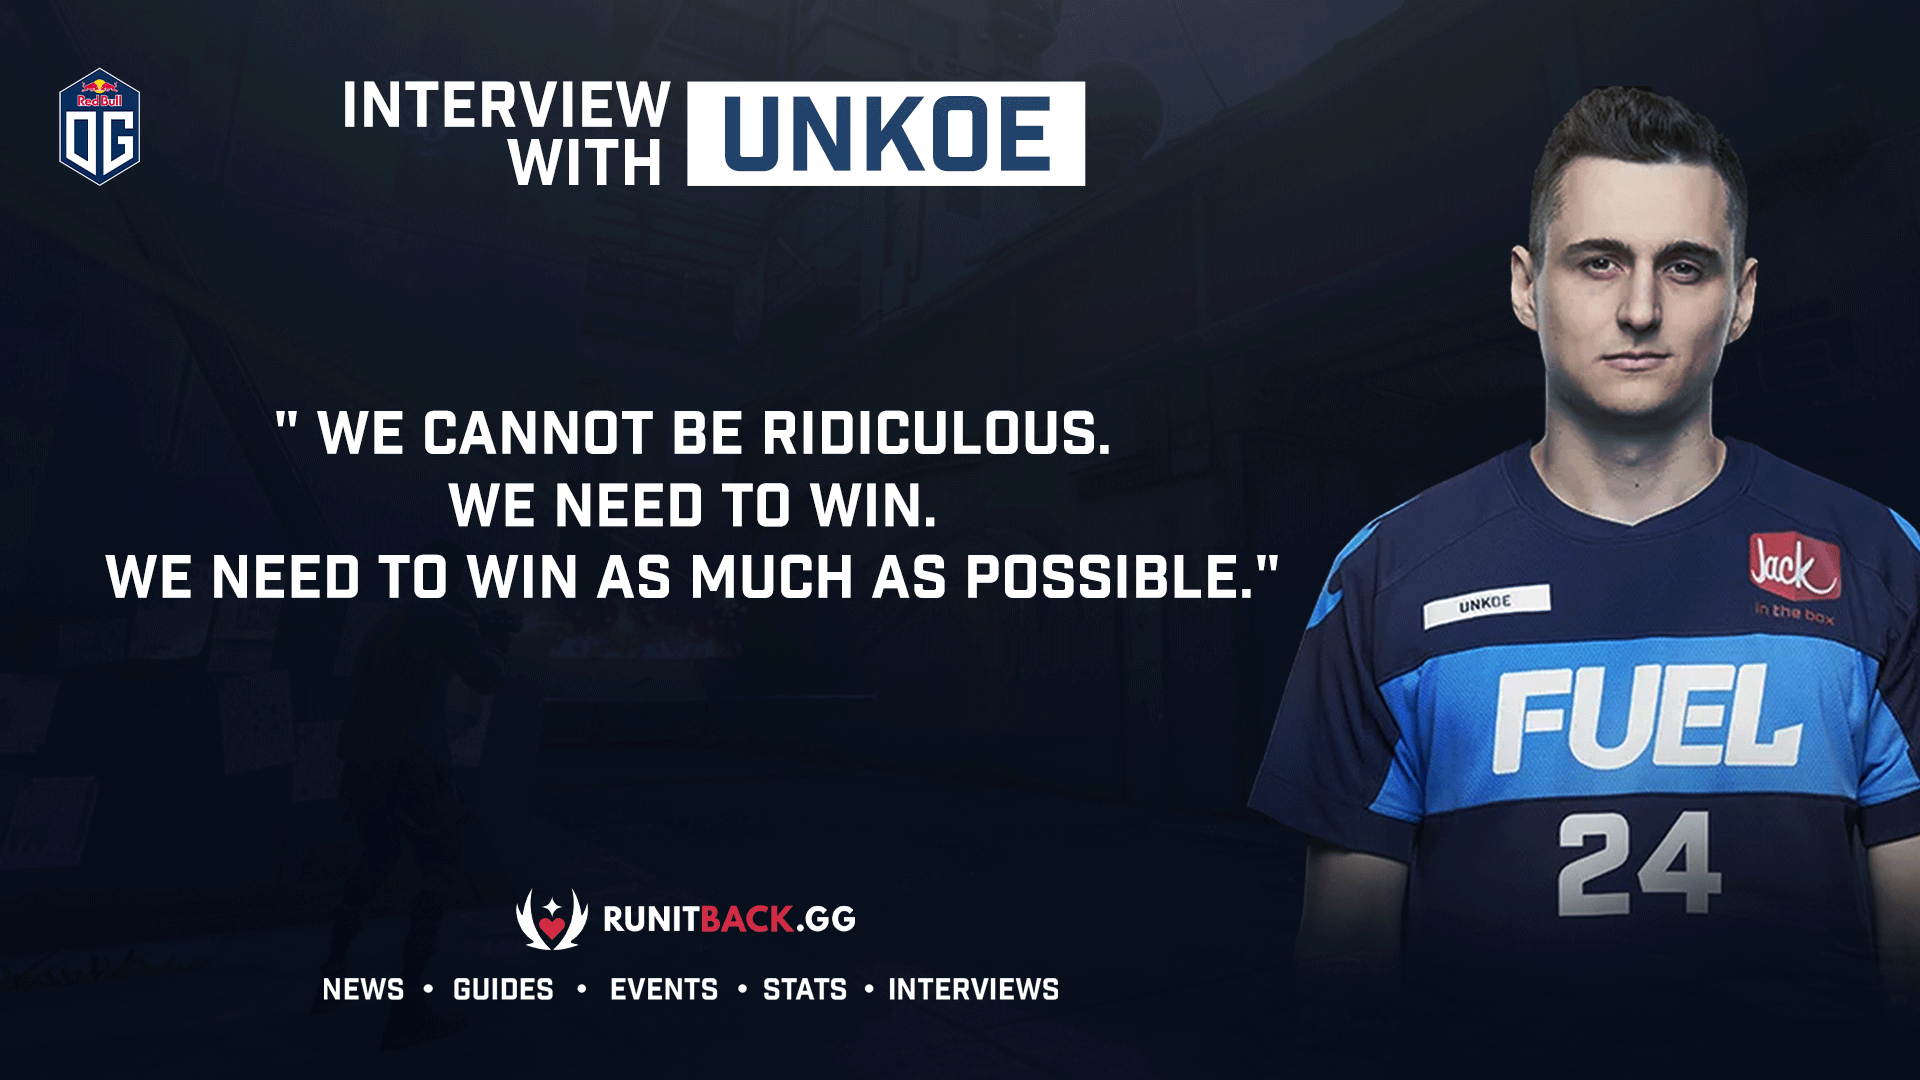 OG uNKOE on thoughts following Raise Your Edge matchup, getting picked up by OG, and agent Astra